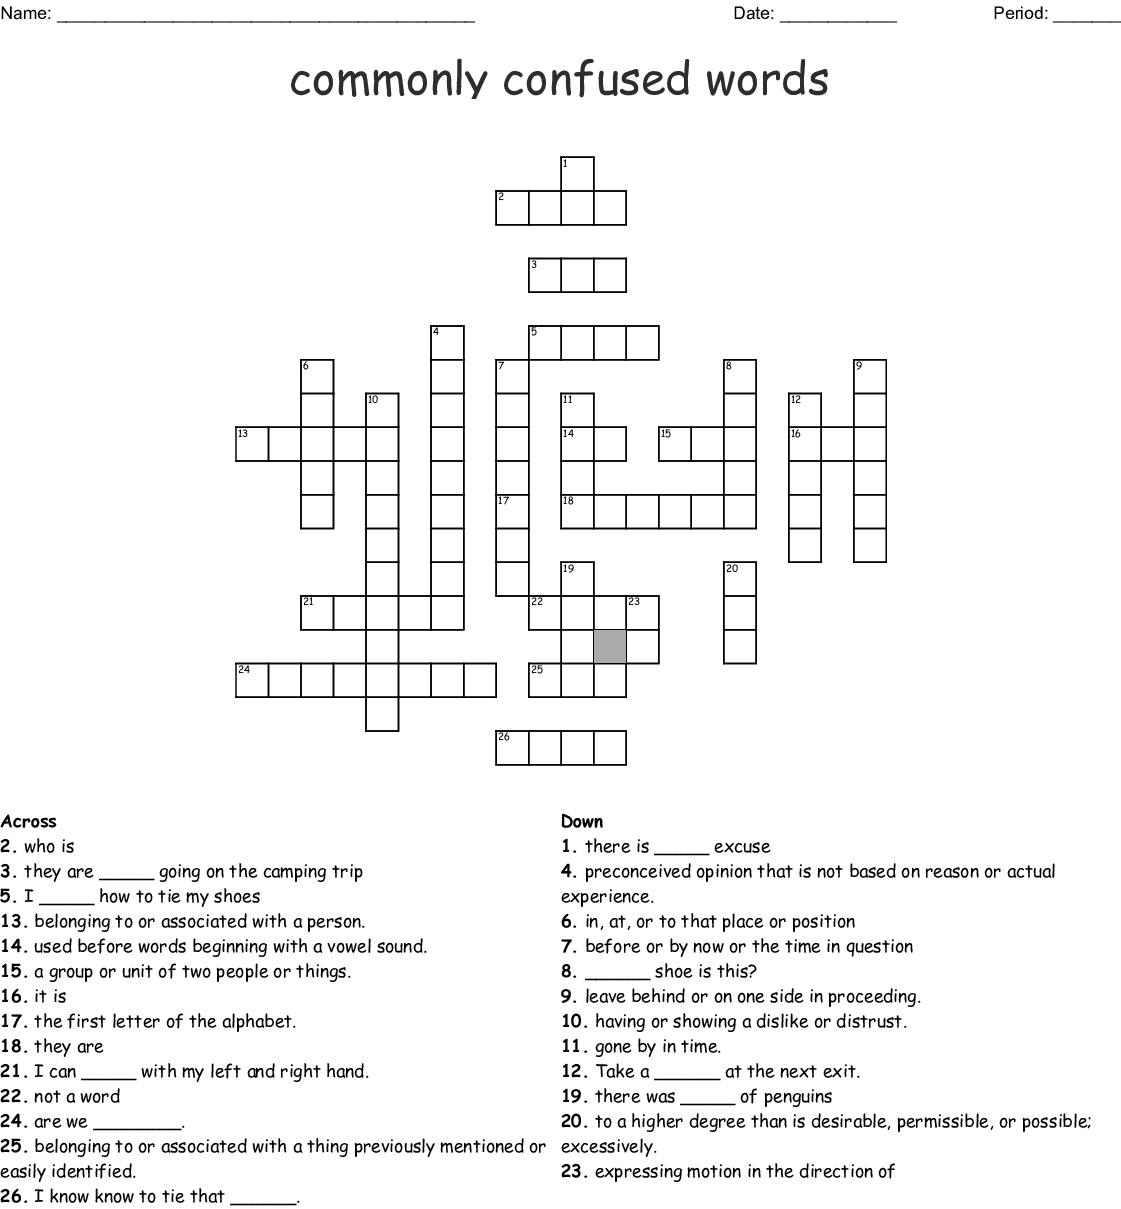 Commonly Confused Words Project Crossword Puzzle